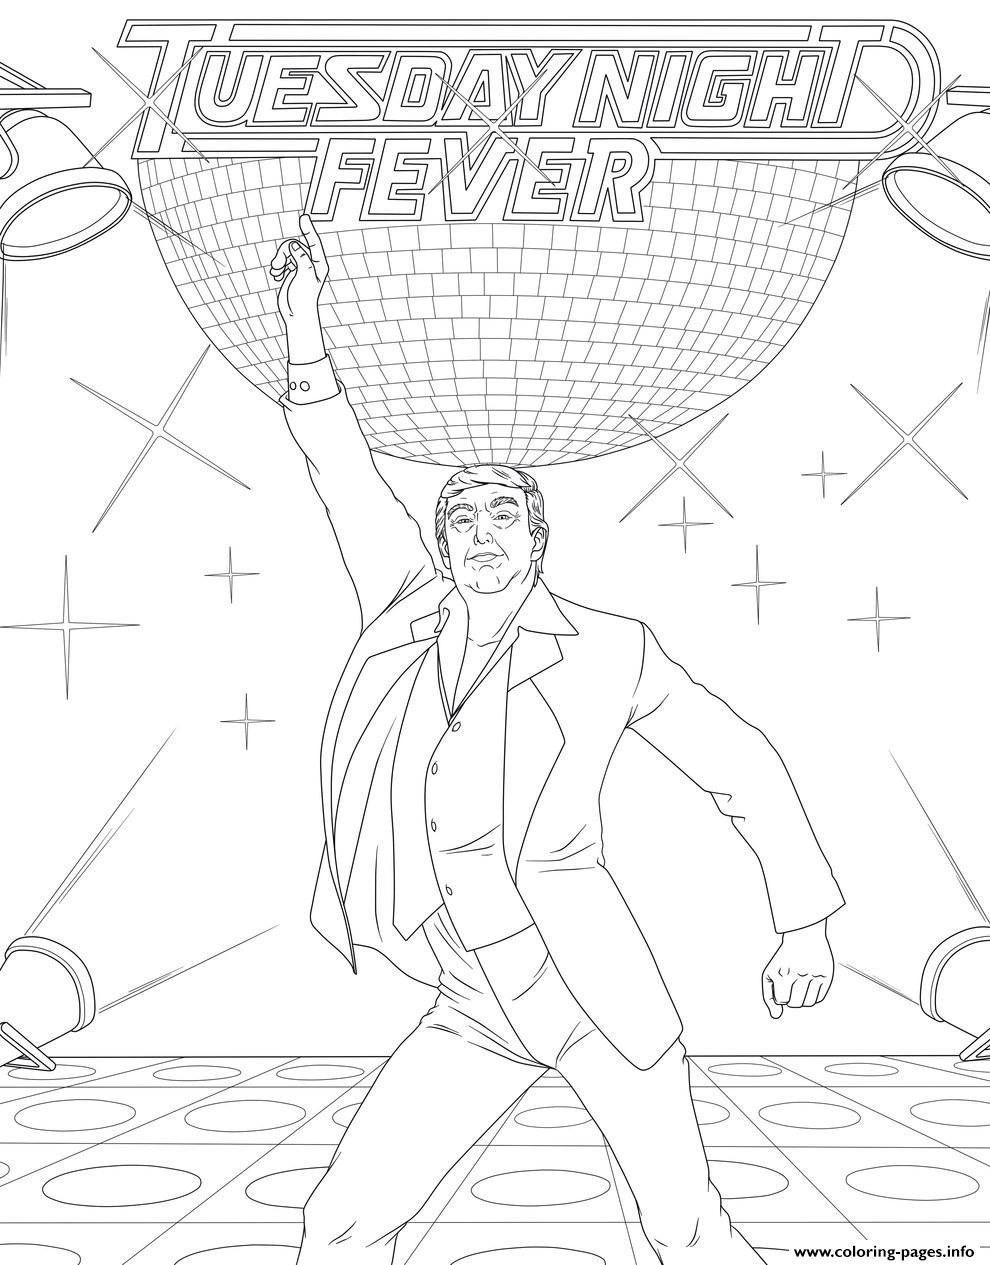 Donald Trump Saturday Night Fever Coloring Pages Printable